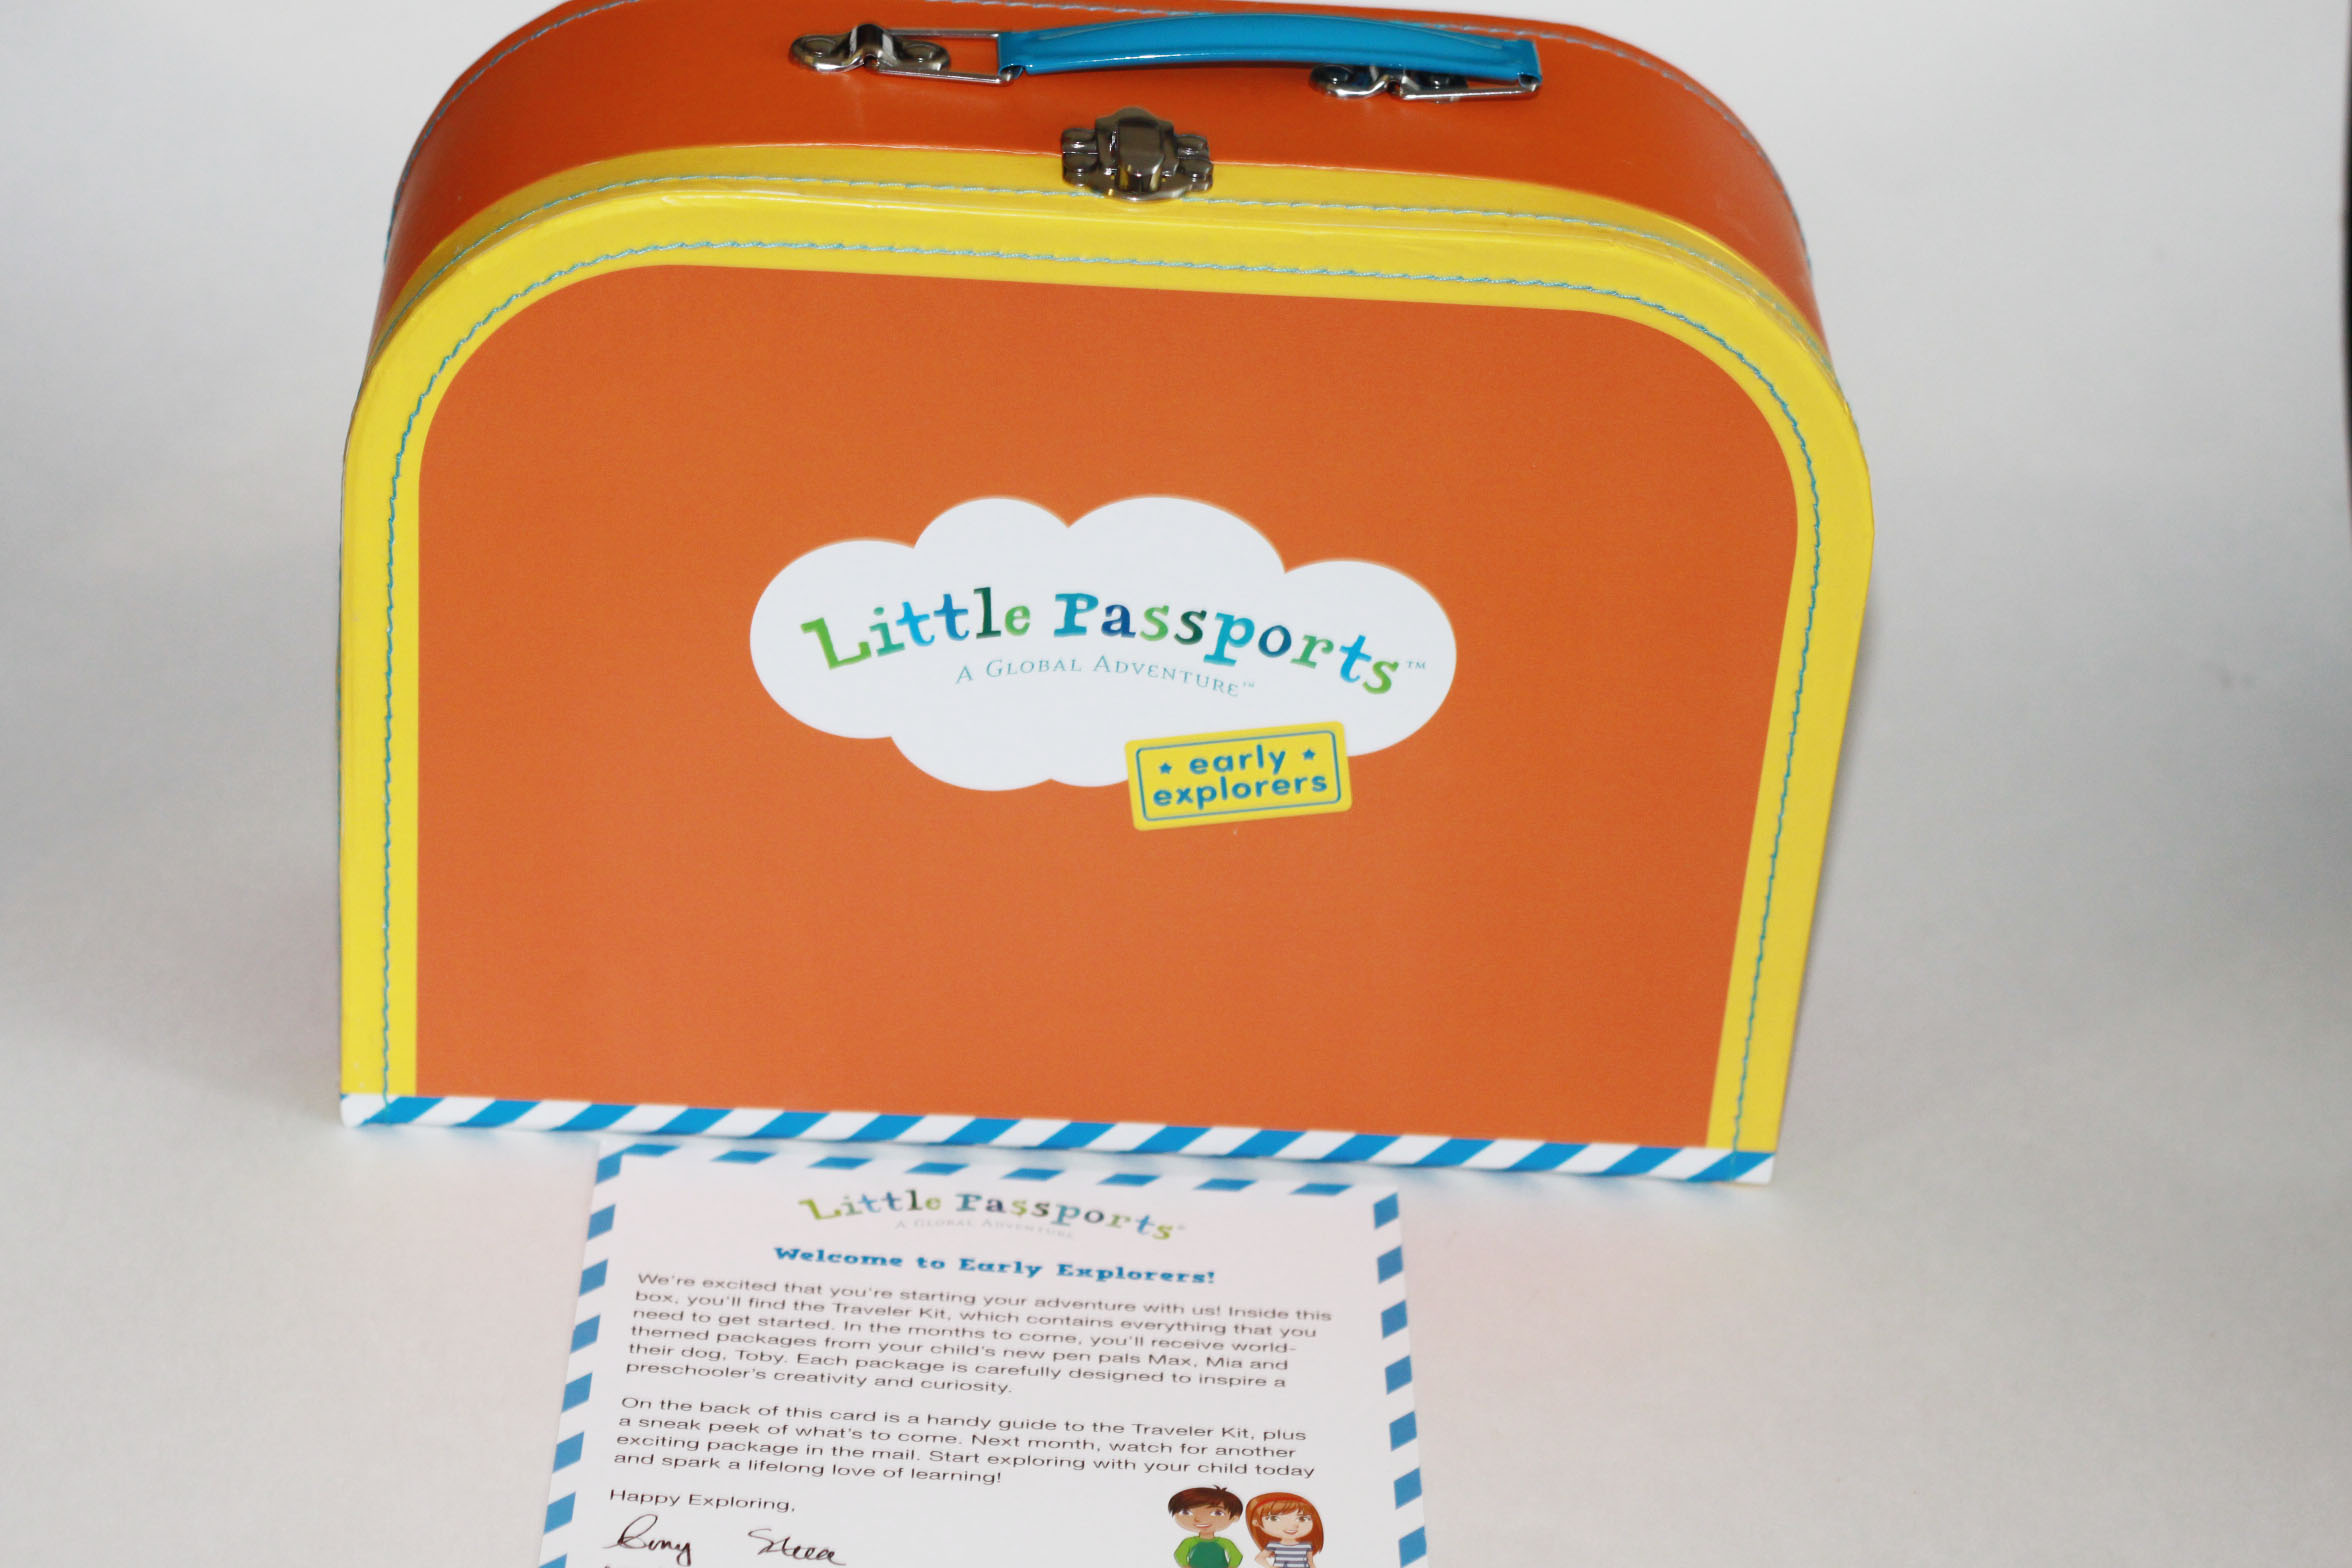 Little Passports Early Explorers Welcome Kit - Review